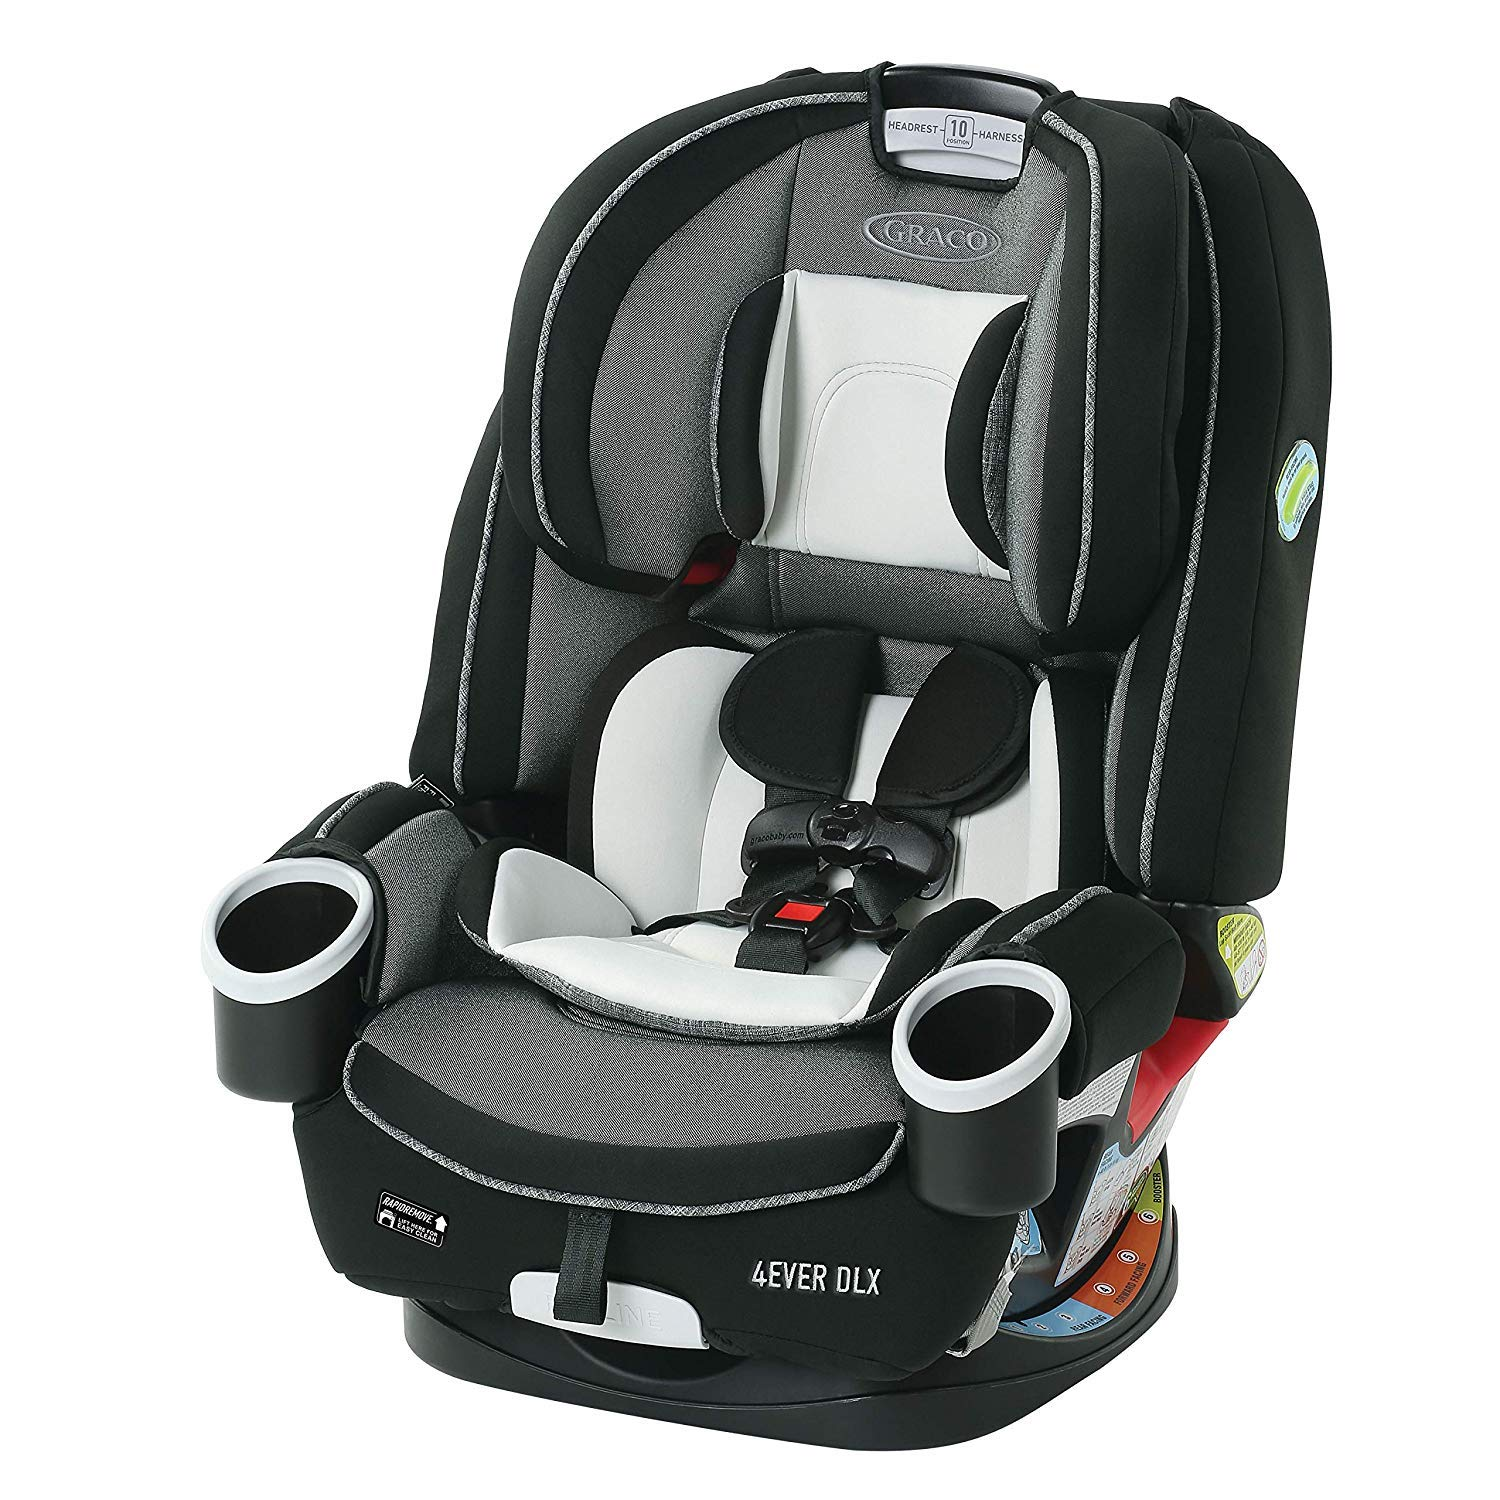 Graco 4Ever DLX 4-in-1 Car Seat, Fairmont